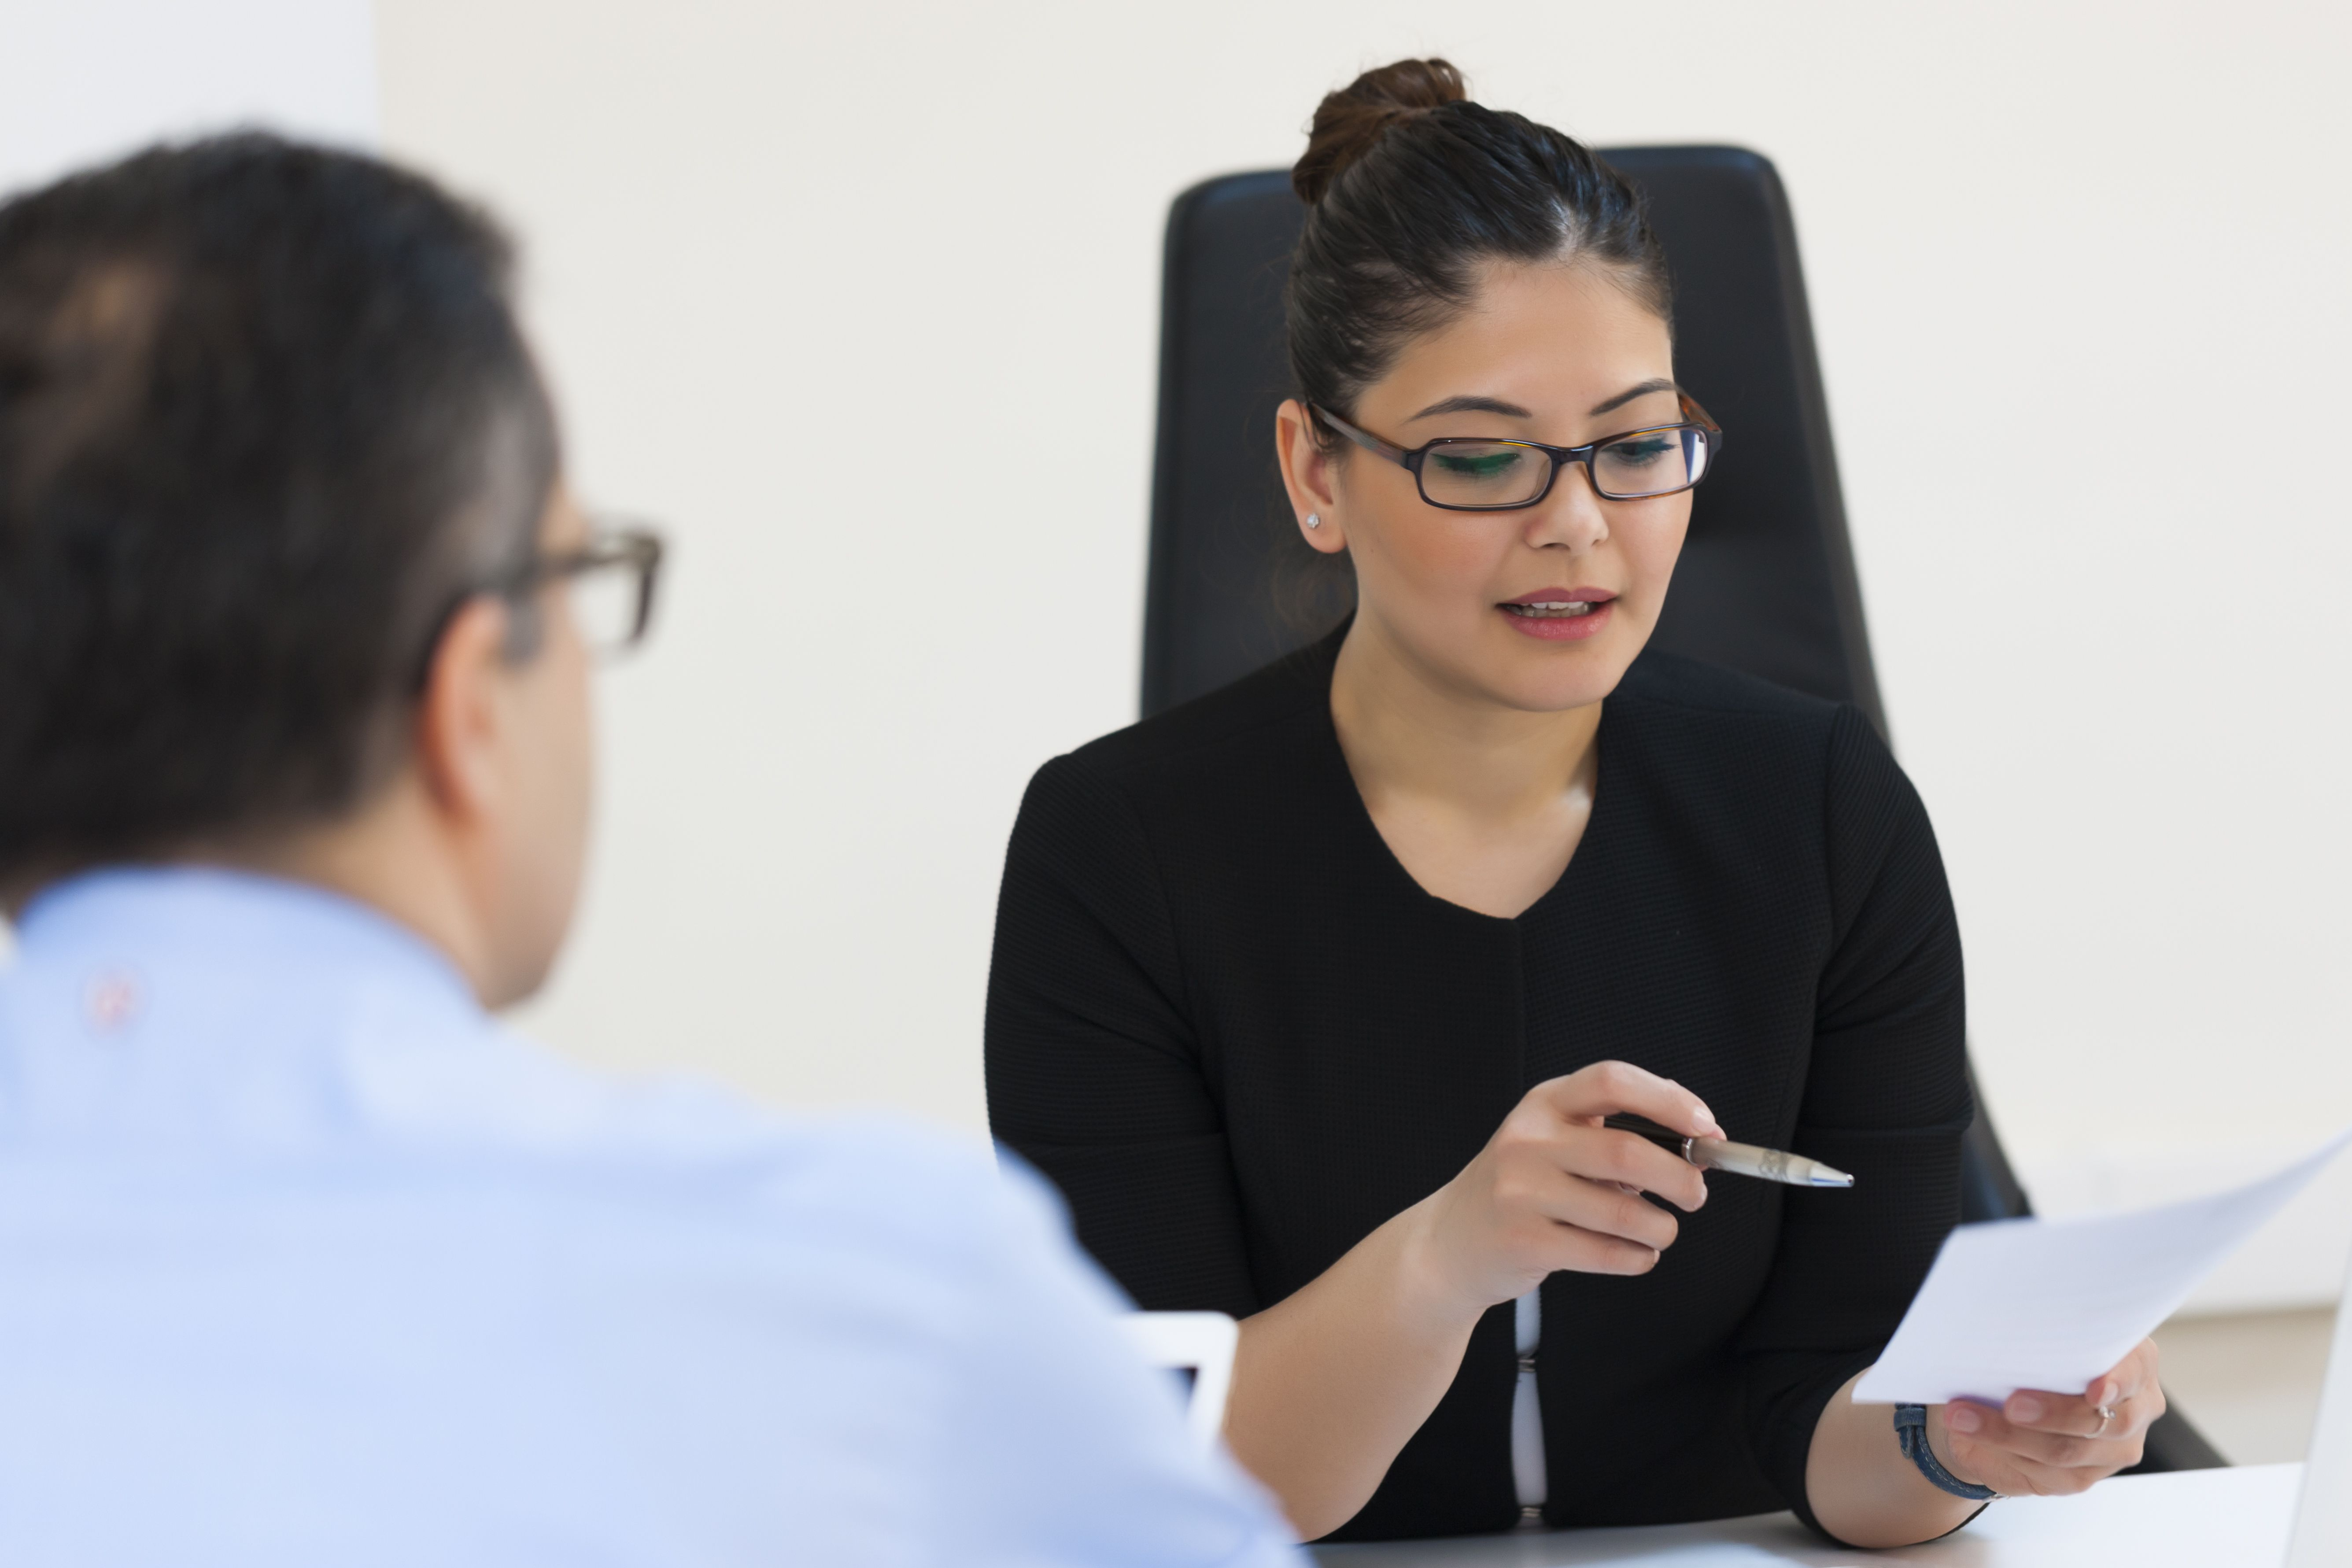 why should you be hired instead of the other applicants